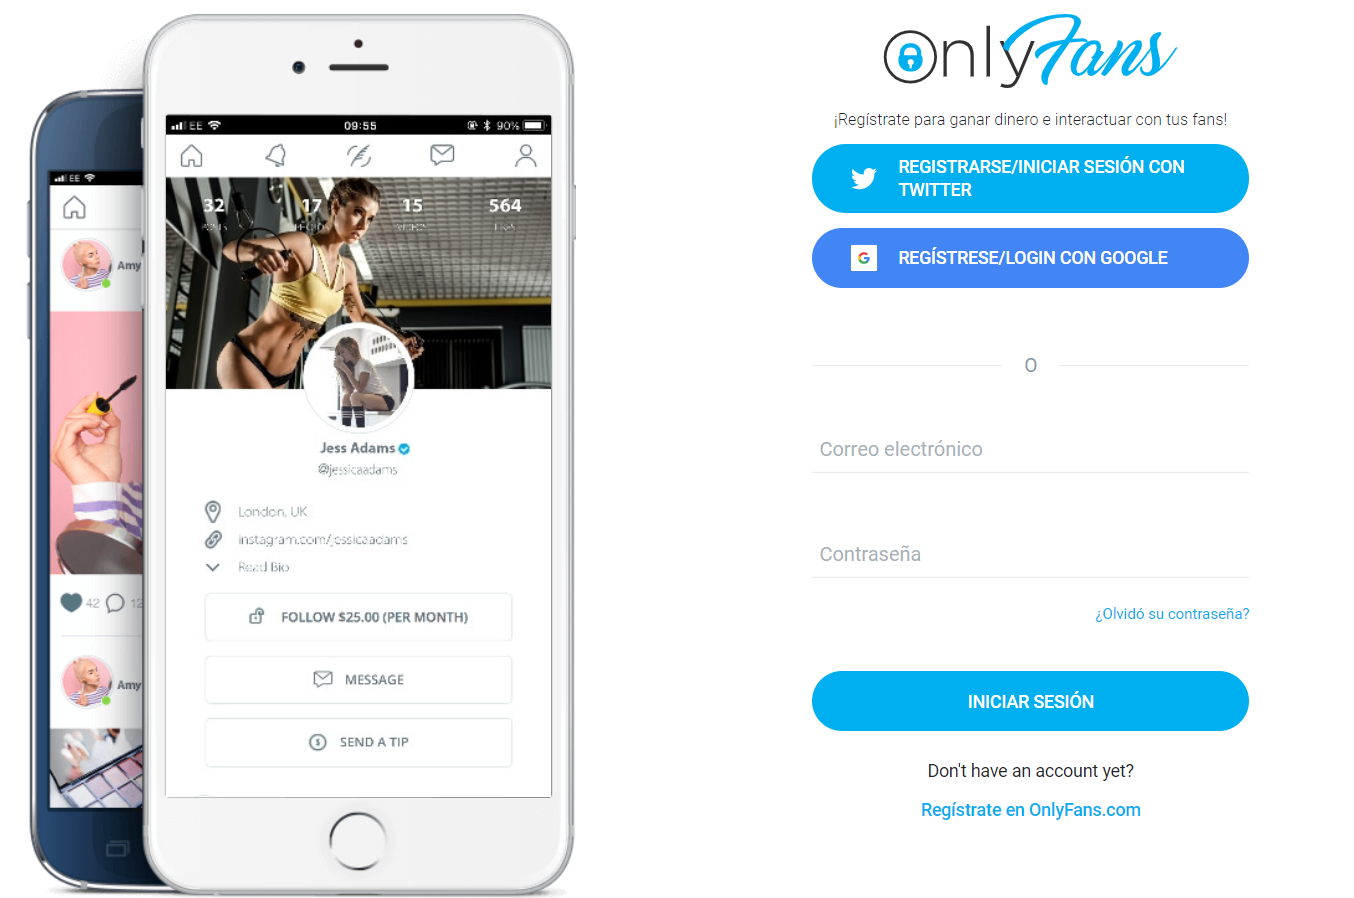 How To Make An Onlyfans Account Finally You Decided To Start Making By Search Onlyfans Accounts With Onlysearcher Feb 2021 Medium